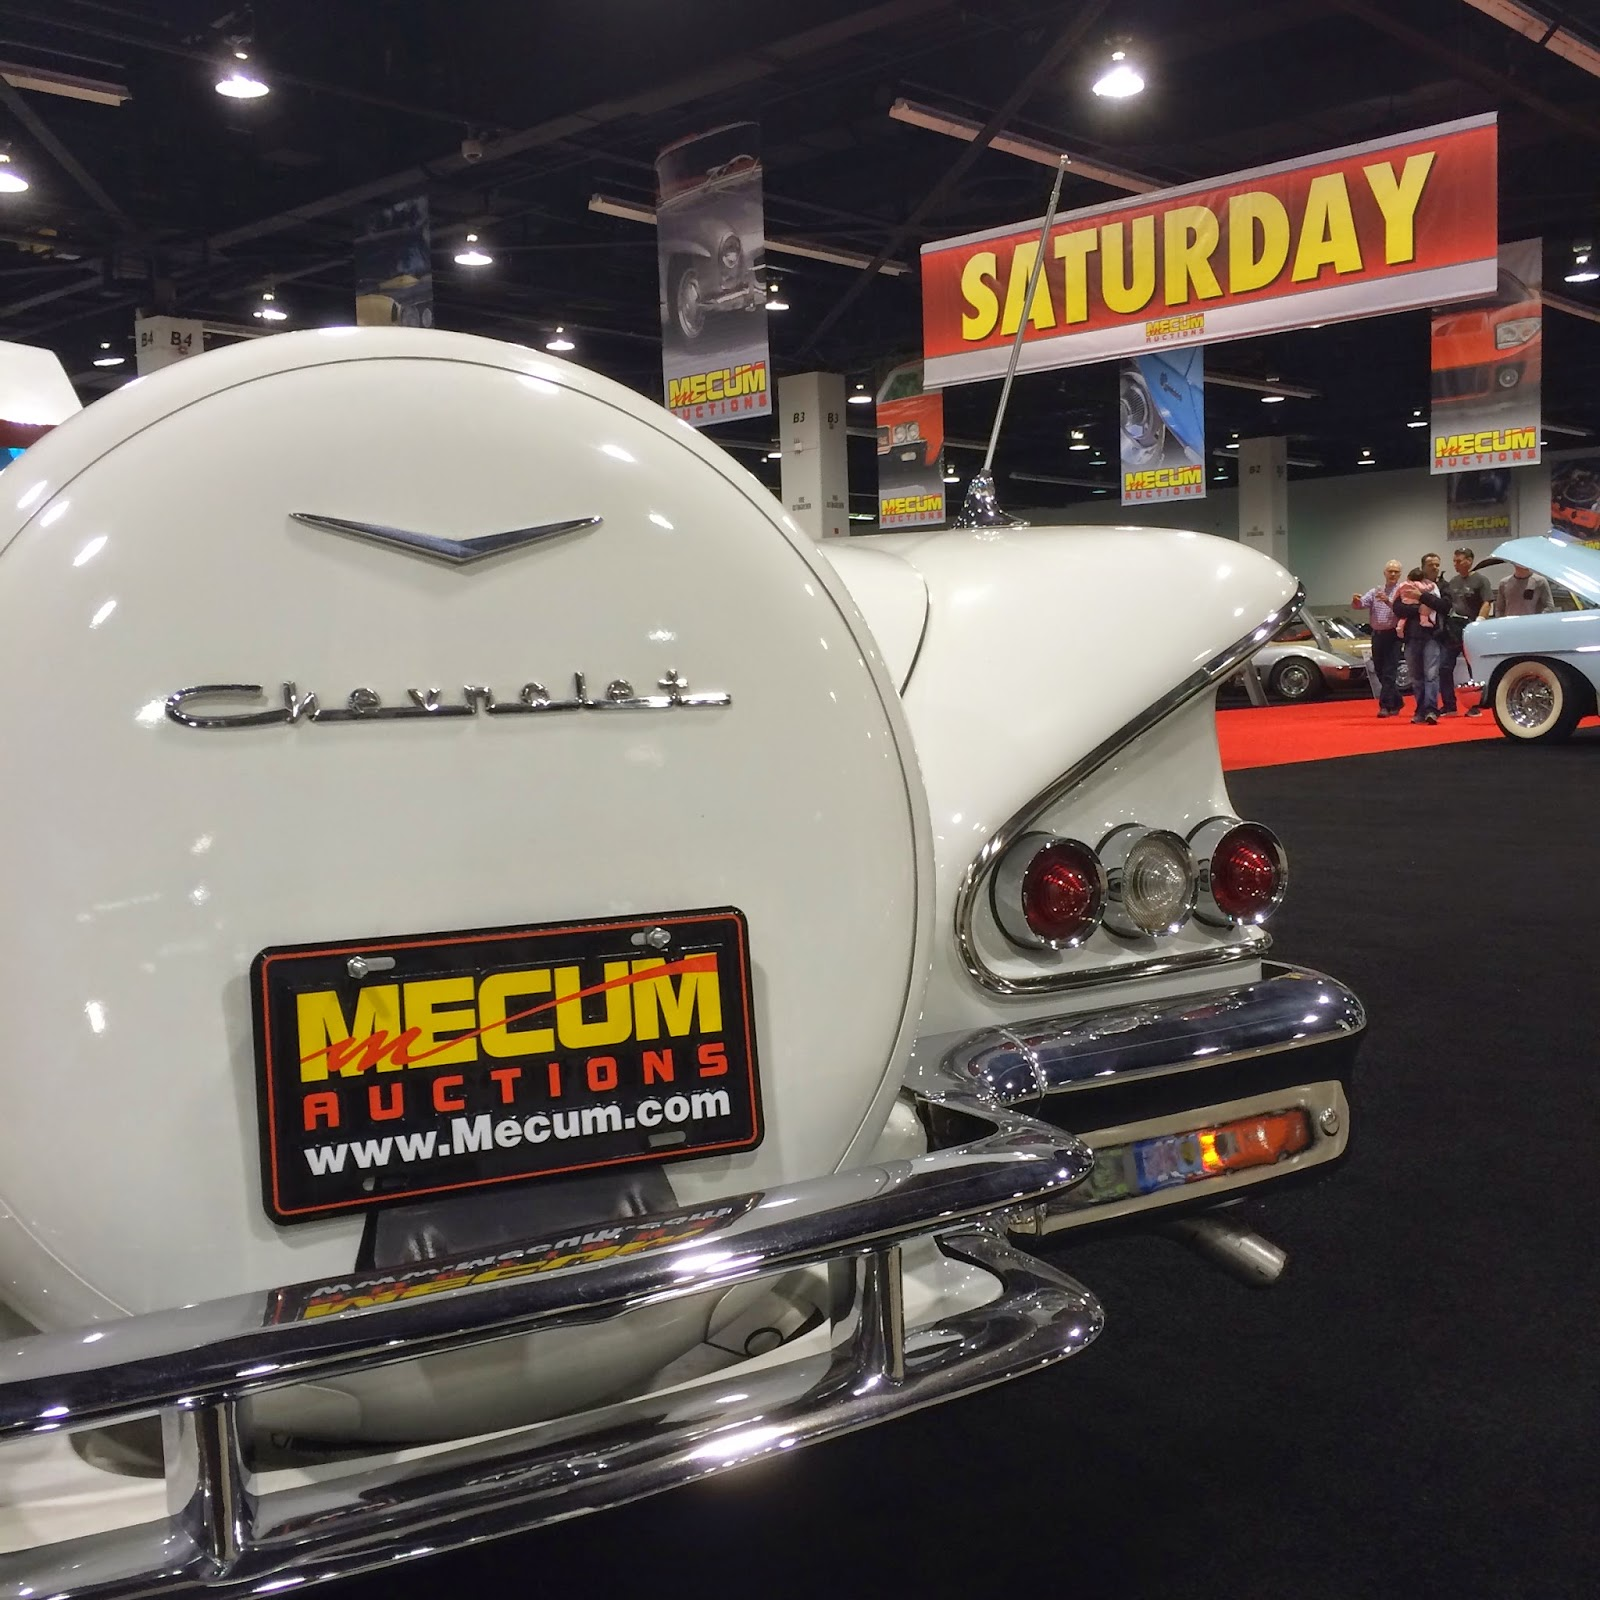 Covering Classic Cars : Mecum Auto Auction At The Anaheim